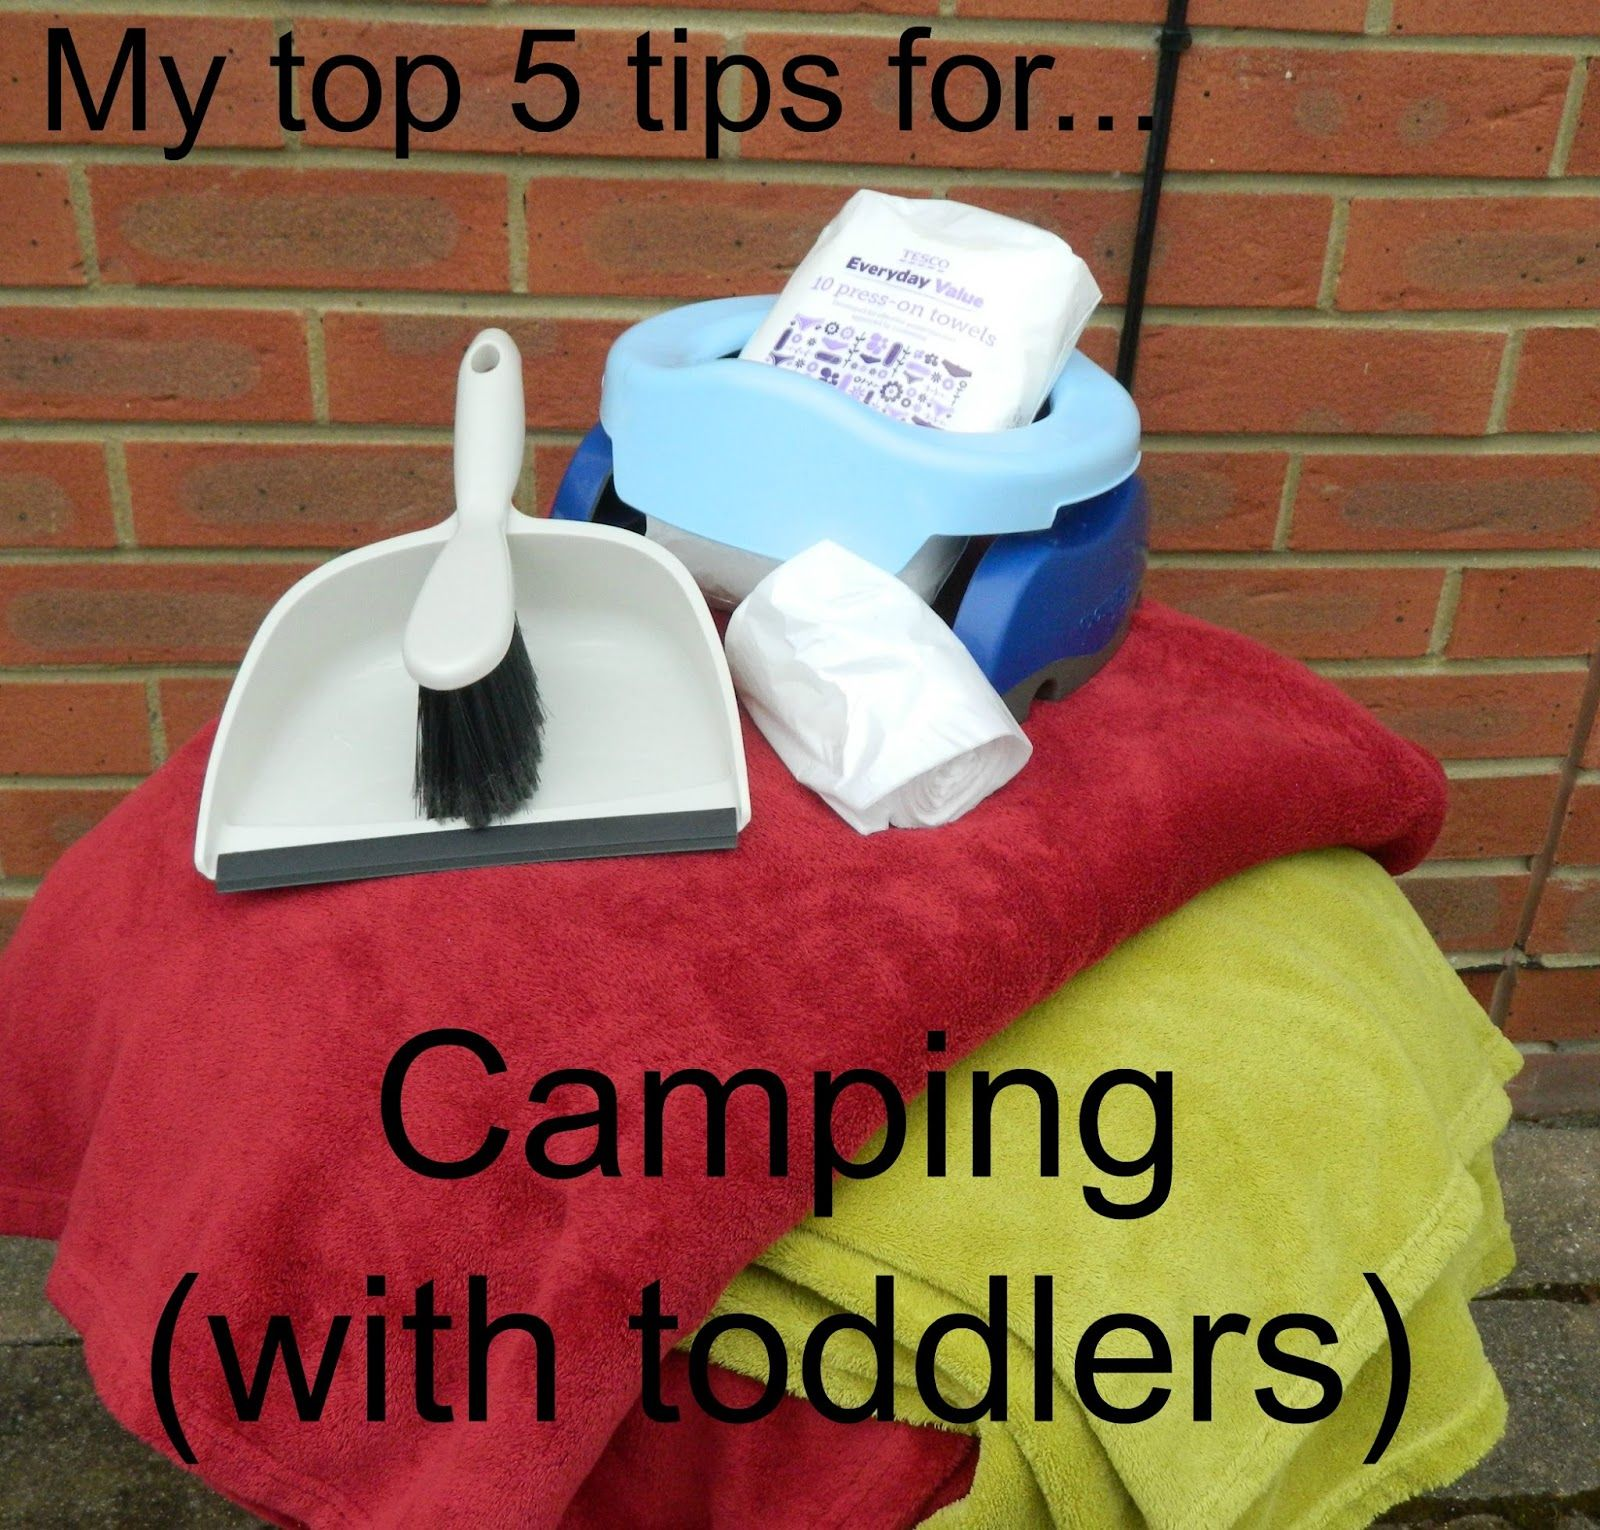 Camping with toddlers is not particularly easy so check out my